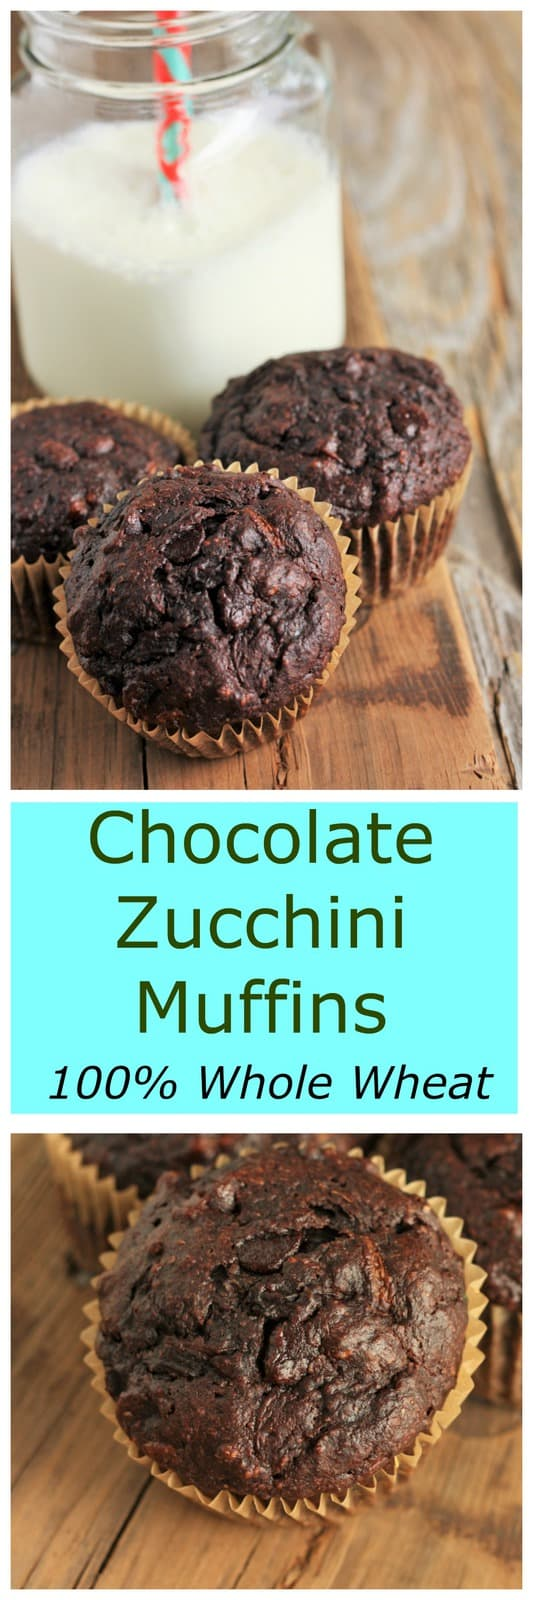 Chocolate Zucchini Muffins - Whole Wheat, Low-Sugar. A picky-kid approved quick breakfast or snack. Each batch boasts 3 whole cups of veggies.